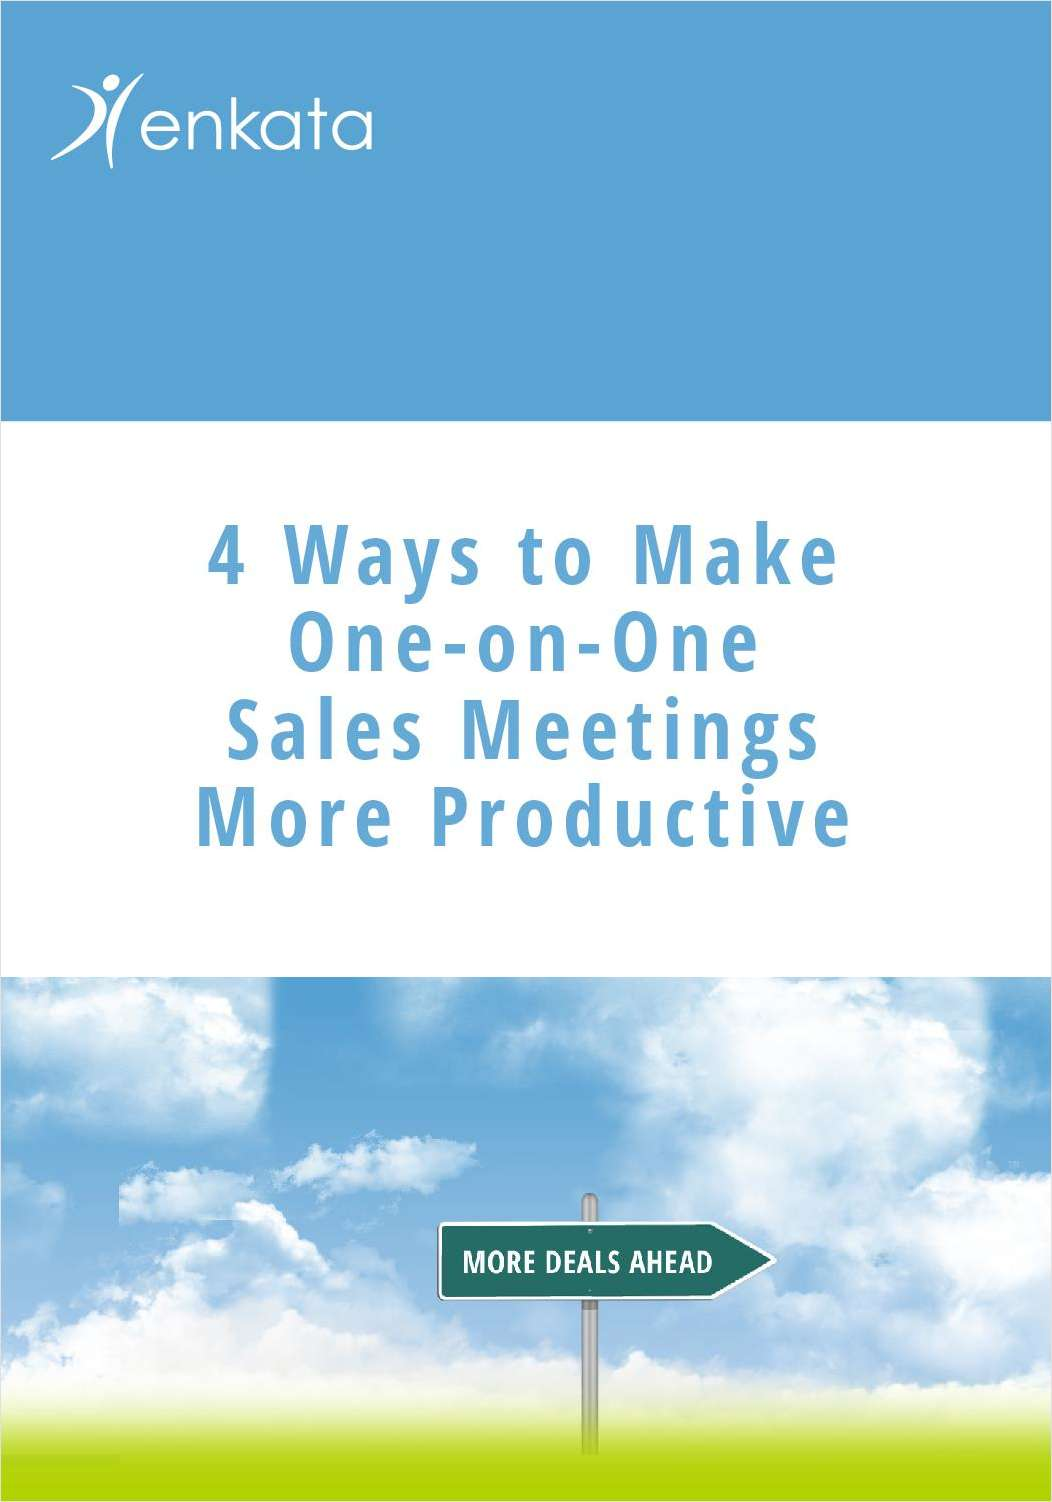 4 Ways to Make One-on-One Sales Meetings More Production